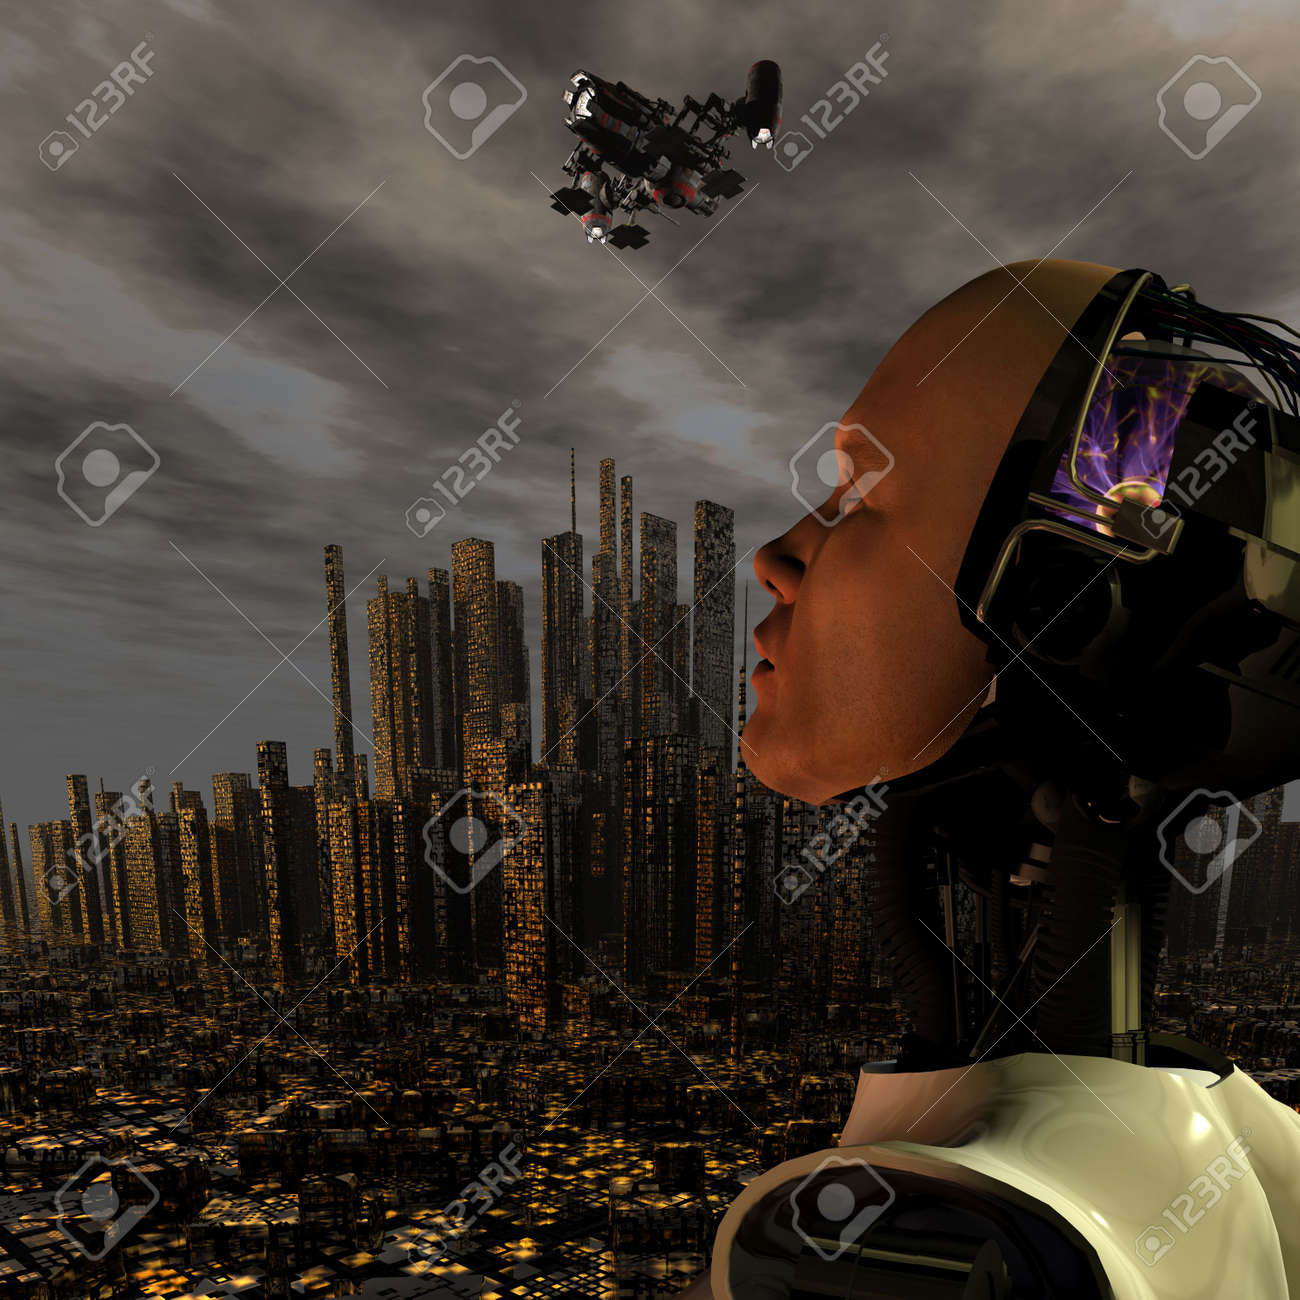 android, cybernetic intelligence machine in 3d Stock Photo - 5943948